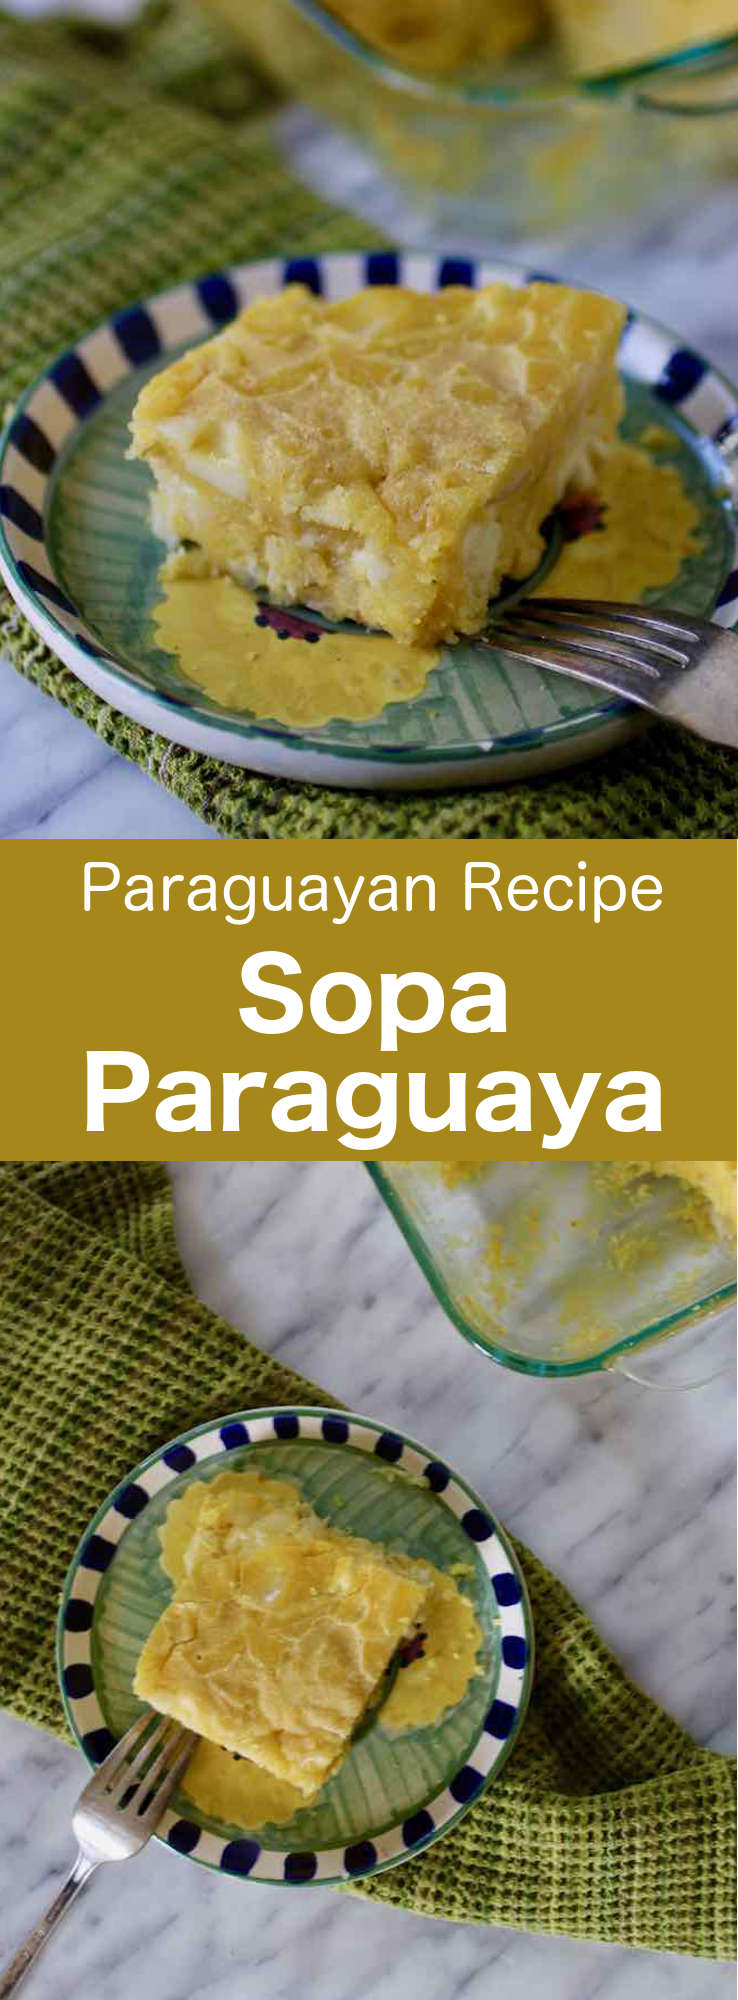 Sopa paraguaya is delicious traditional cheesy cornbread from Paraguay, which is prepared with corn flour, cheese, milk and onions. It is traditionally served with meats as well as soups. #Paraguay #ParaguayanCuisine #ParaguayanRecipe #LatinAmericanCuisine #LatinAmericanRecipe #SouthAmericanCuisine #SouthAmericanRecipe #WorldFlavors #196flavors